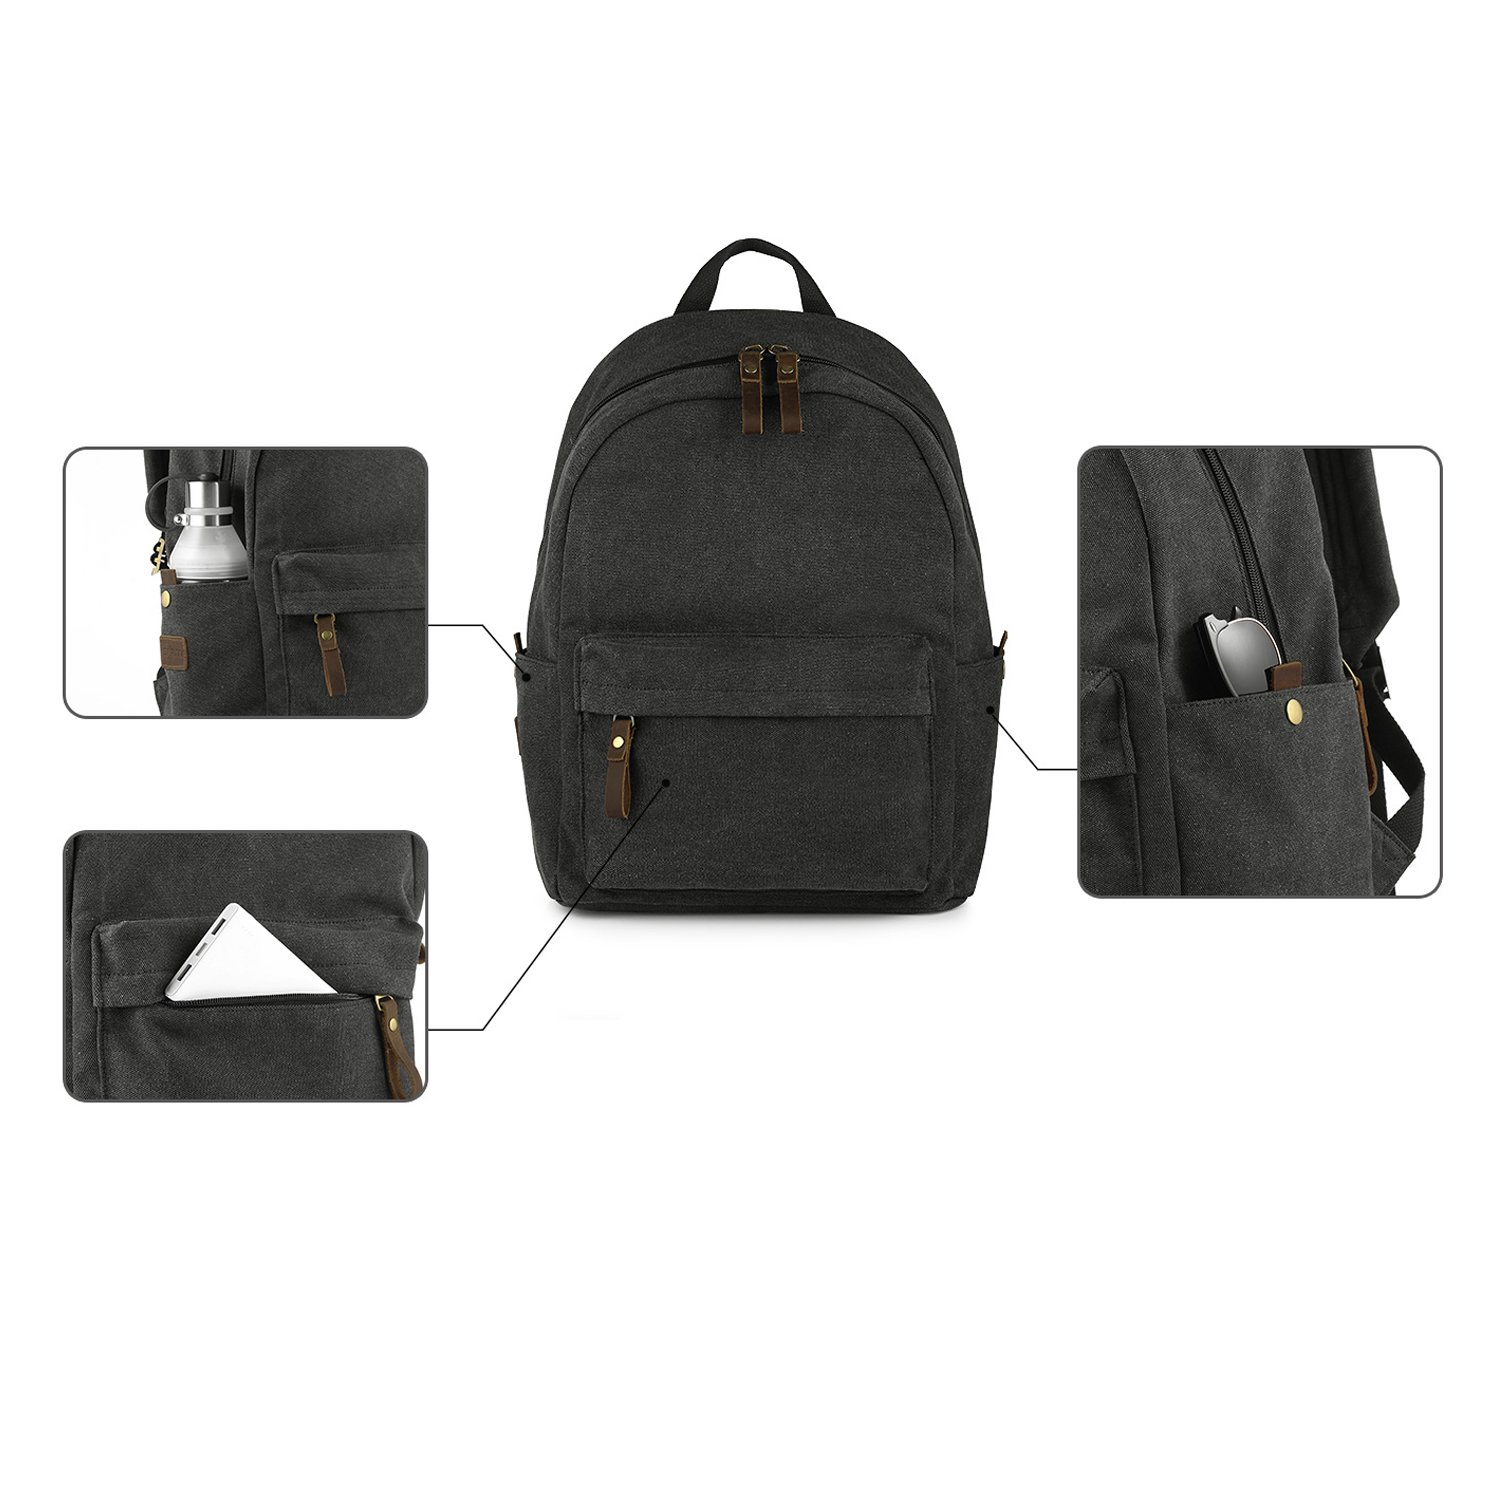 SMRITI Canvas 15.6 inch Laptop Backpack Casual Daypack for School Work and Travel - Dark Grey by SMRITI (Image #8)